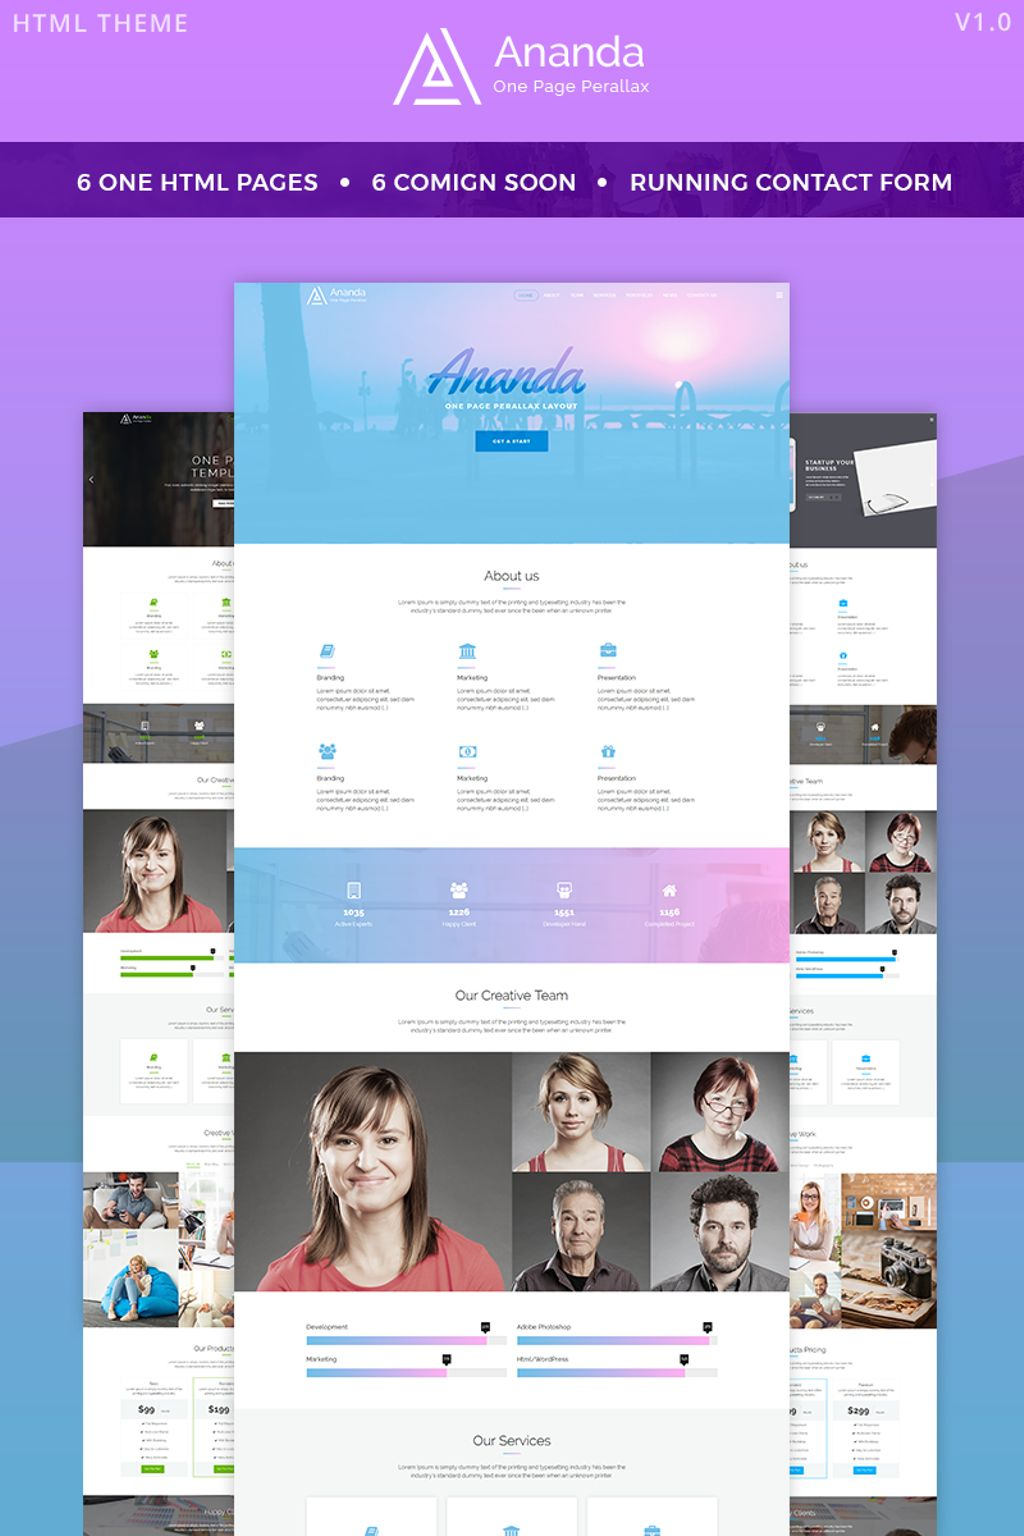 Ananda - One Page Parallax Website Template - screenshot